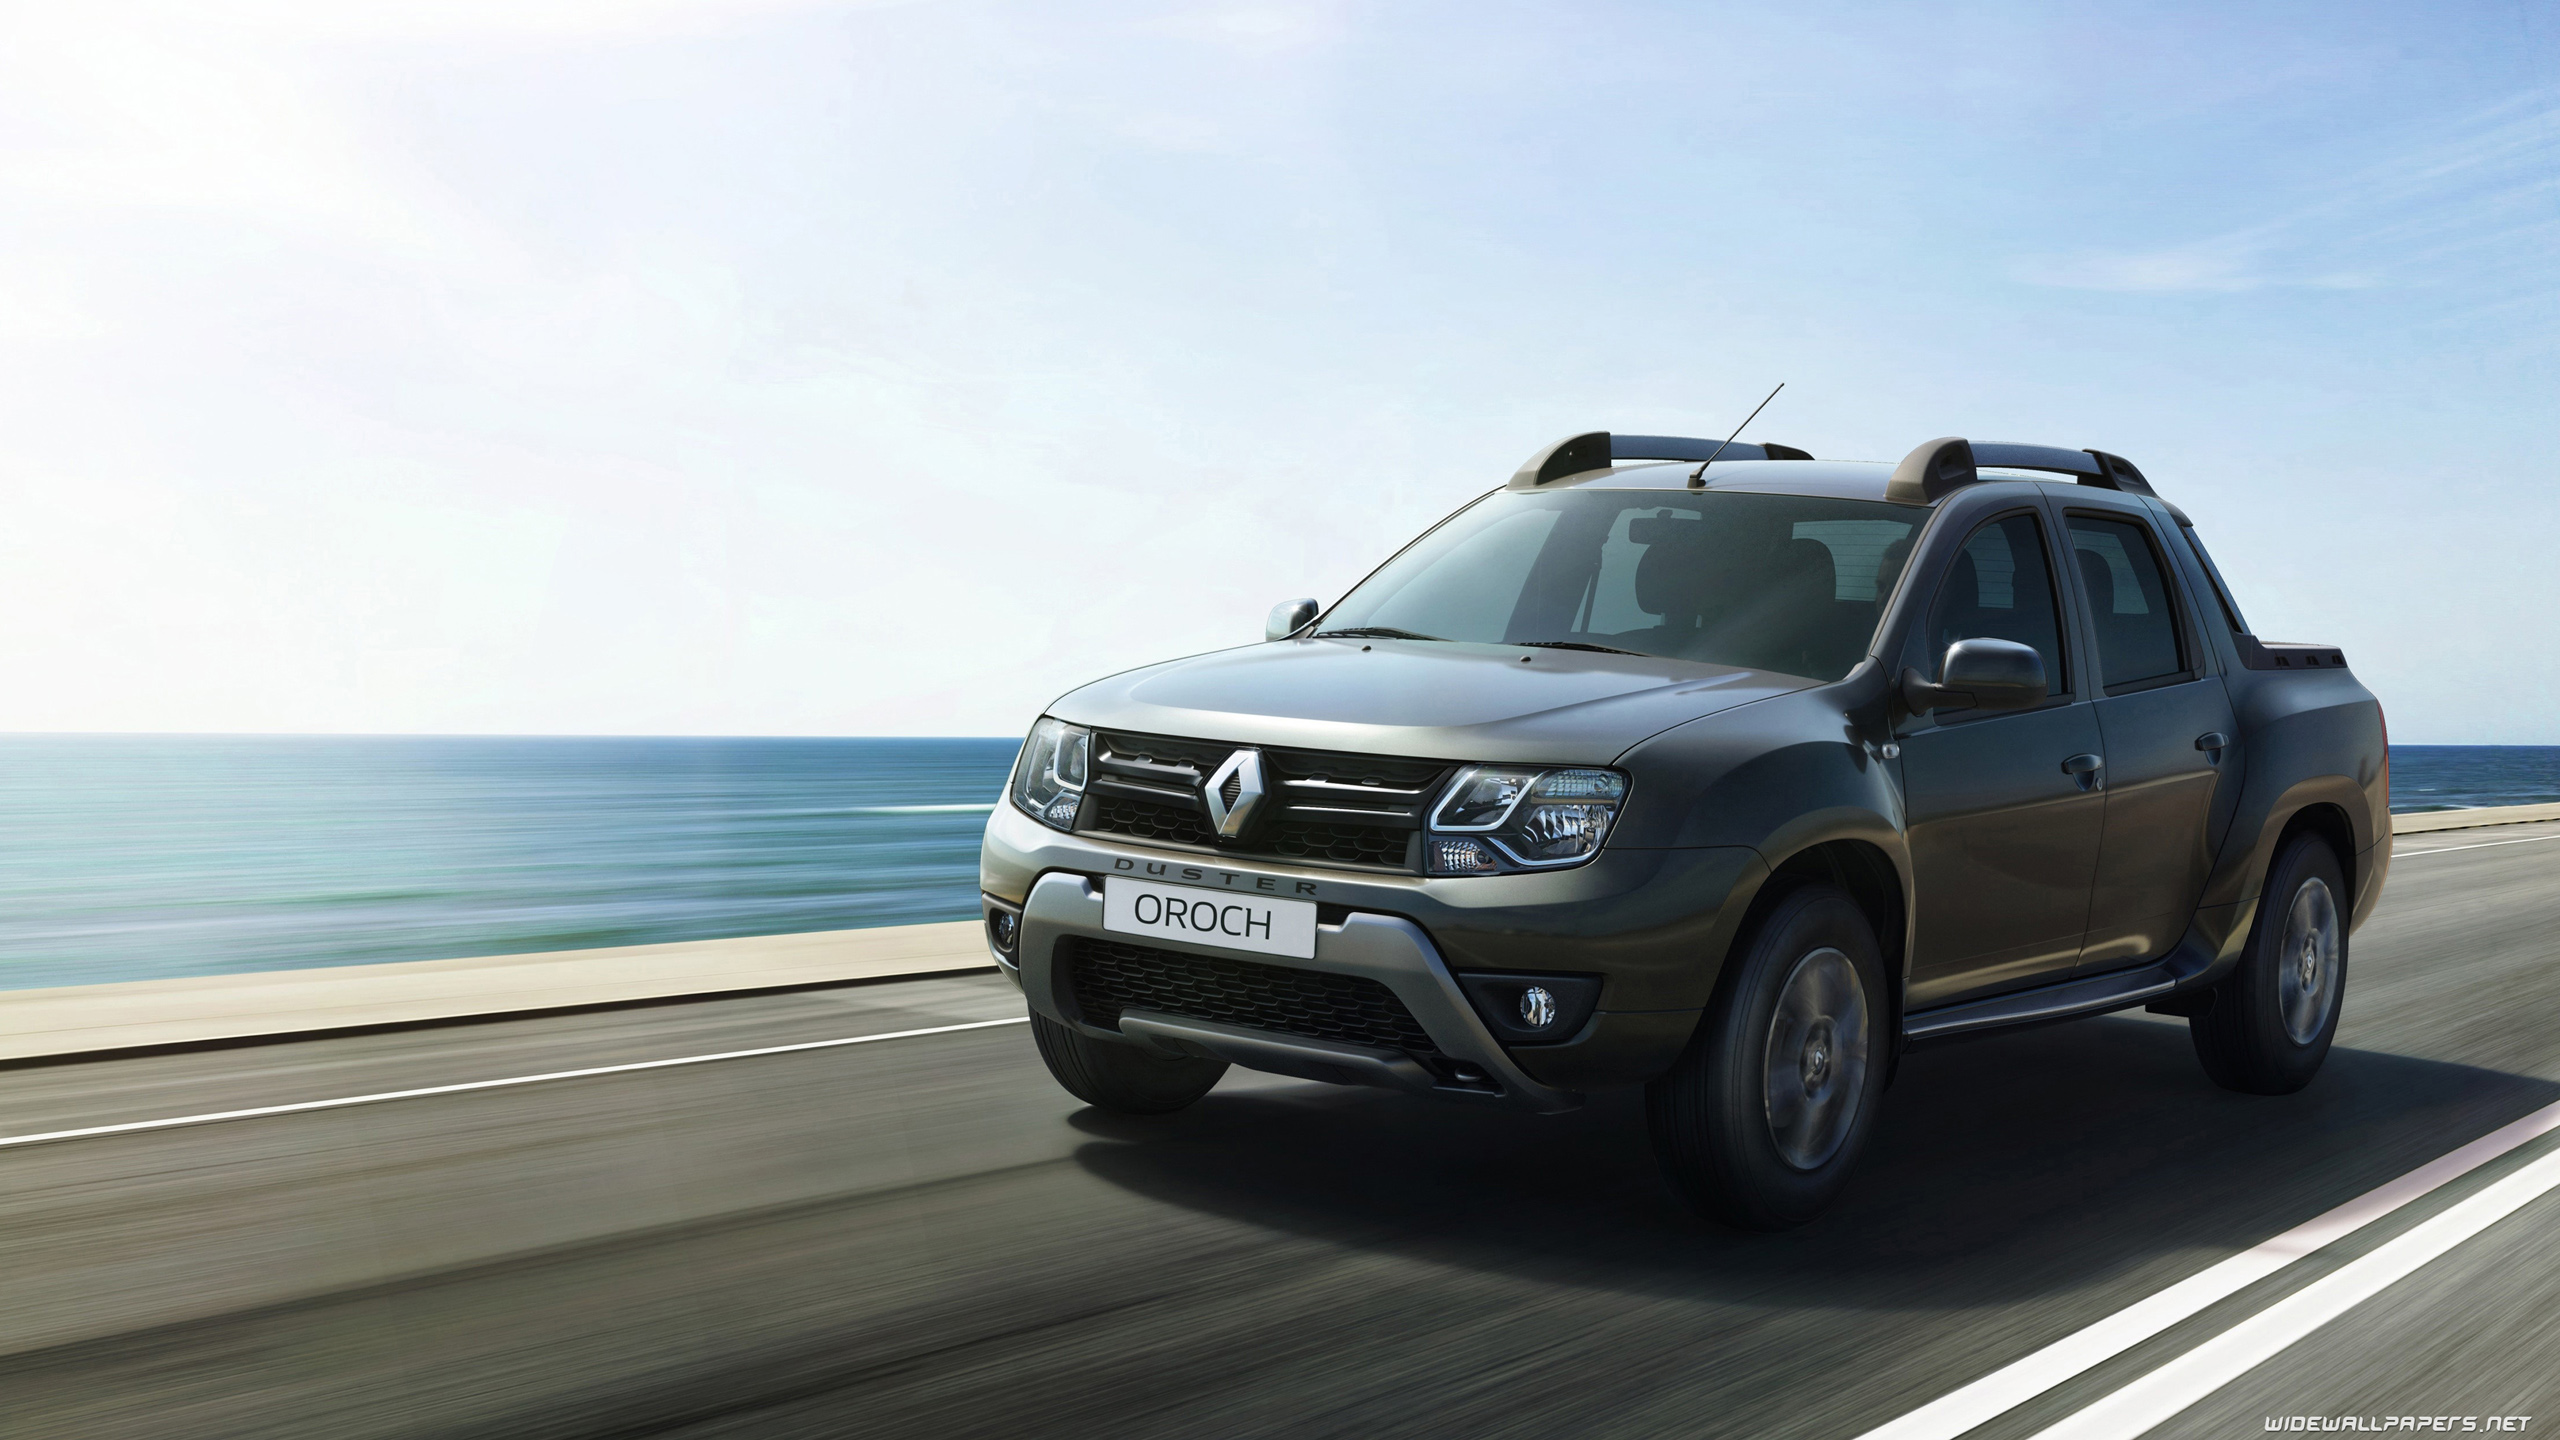 Renault duster oroch cars desktop wallpapers 4k ultra hd wallpapers 4k ultra hd renault duster oroch 2560x1440 2560x1600 3840x2160 voltagebd Images